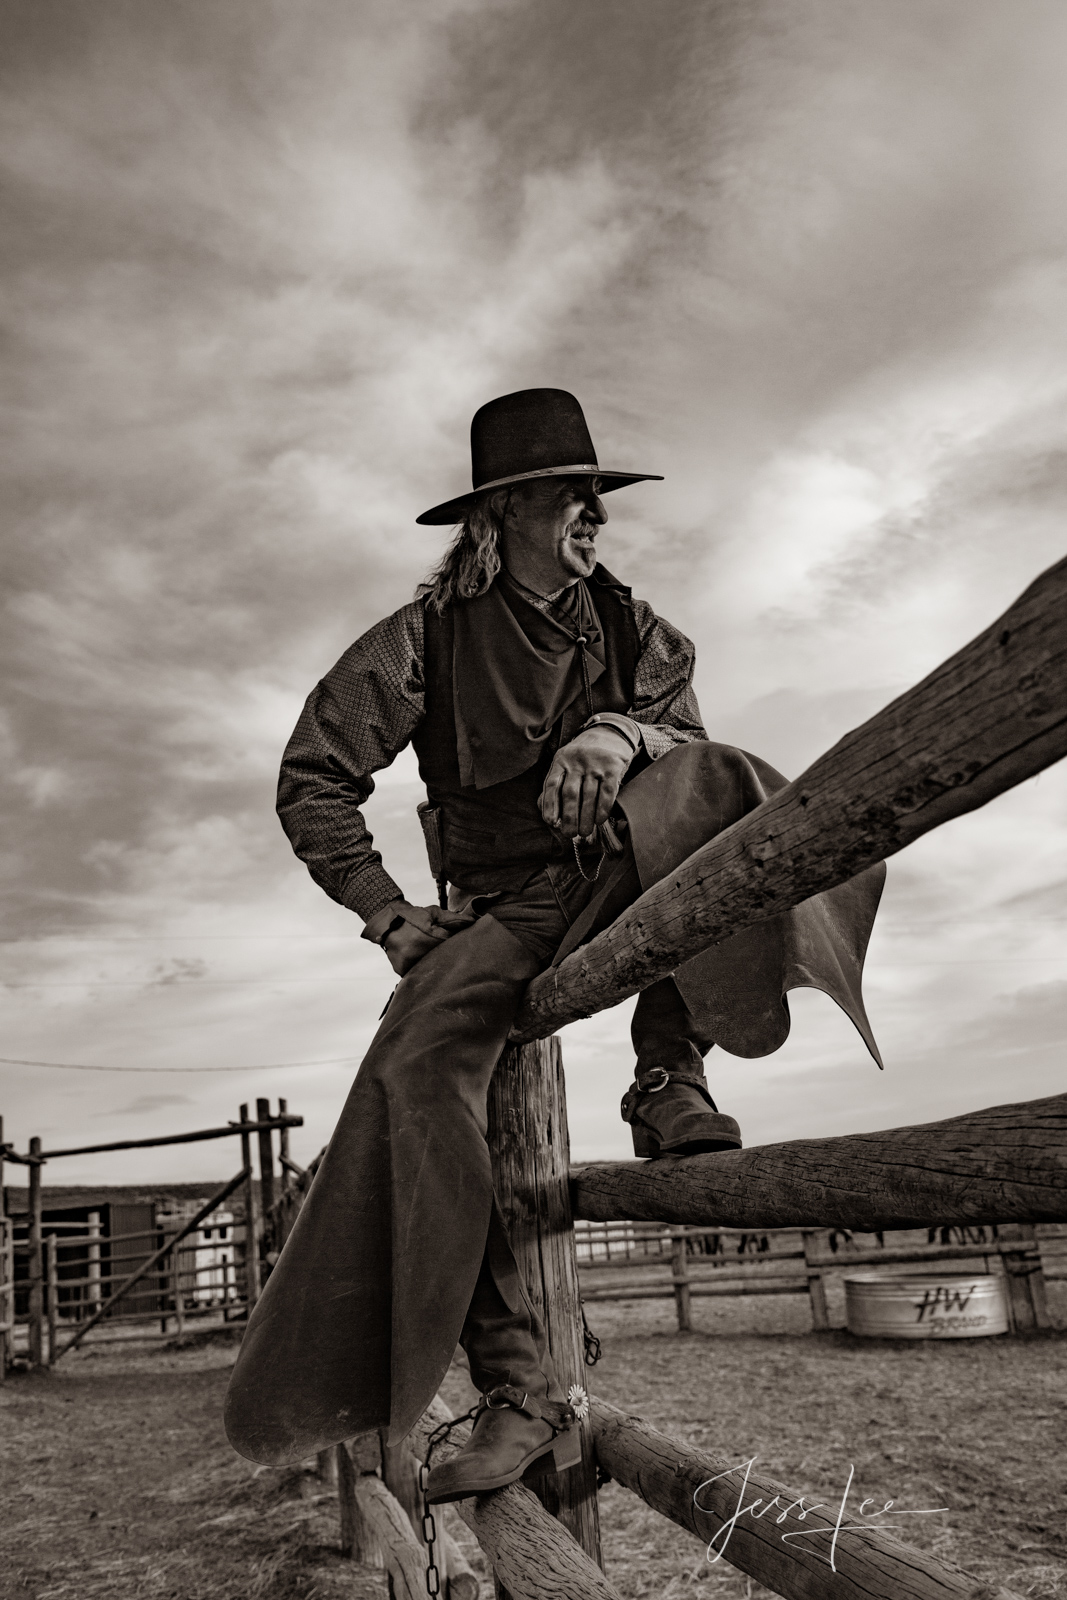 Cowboy on the fence